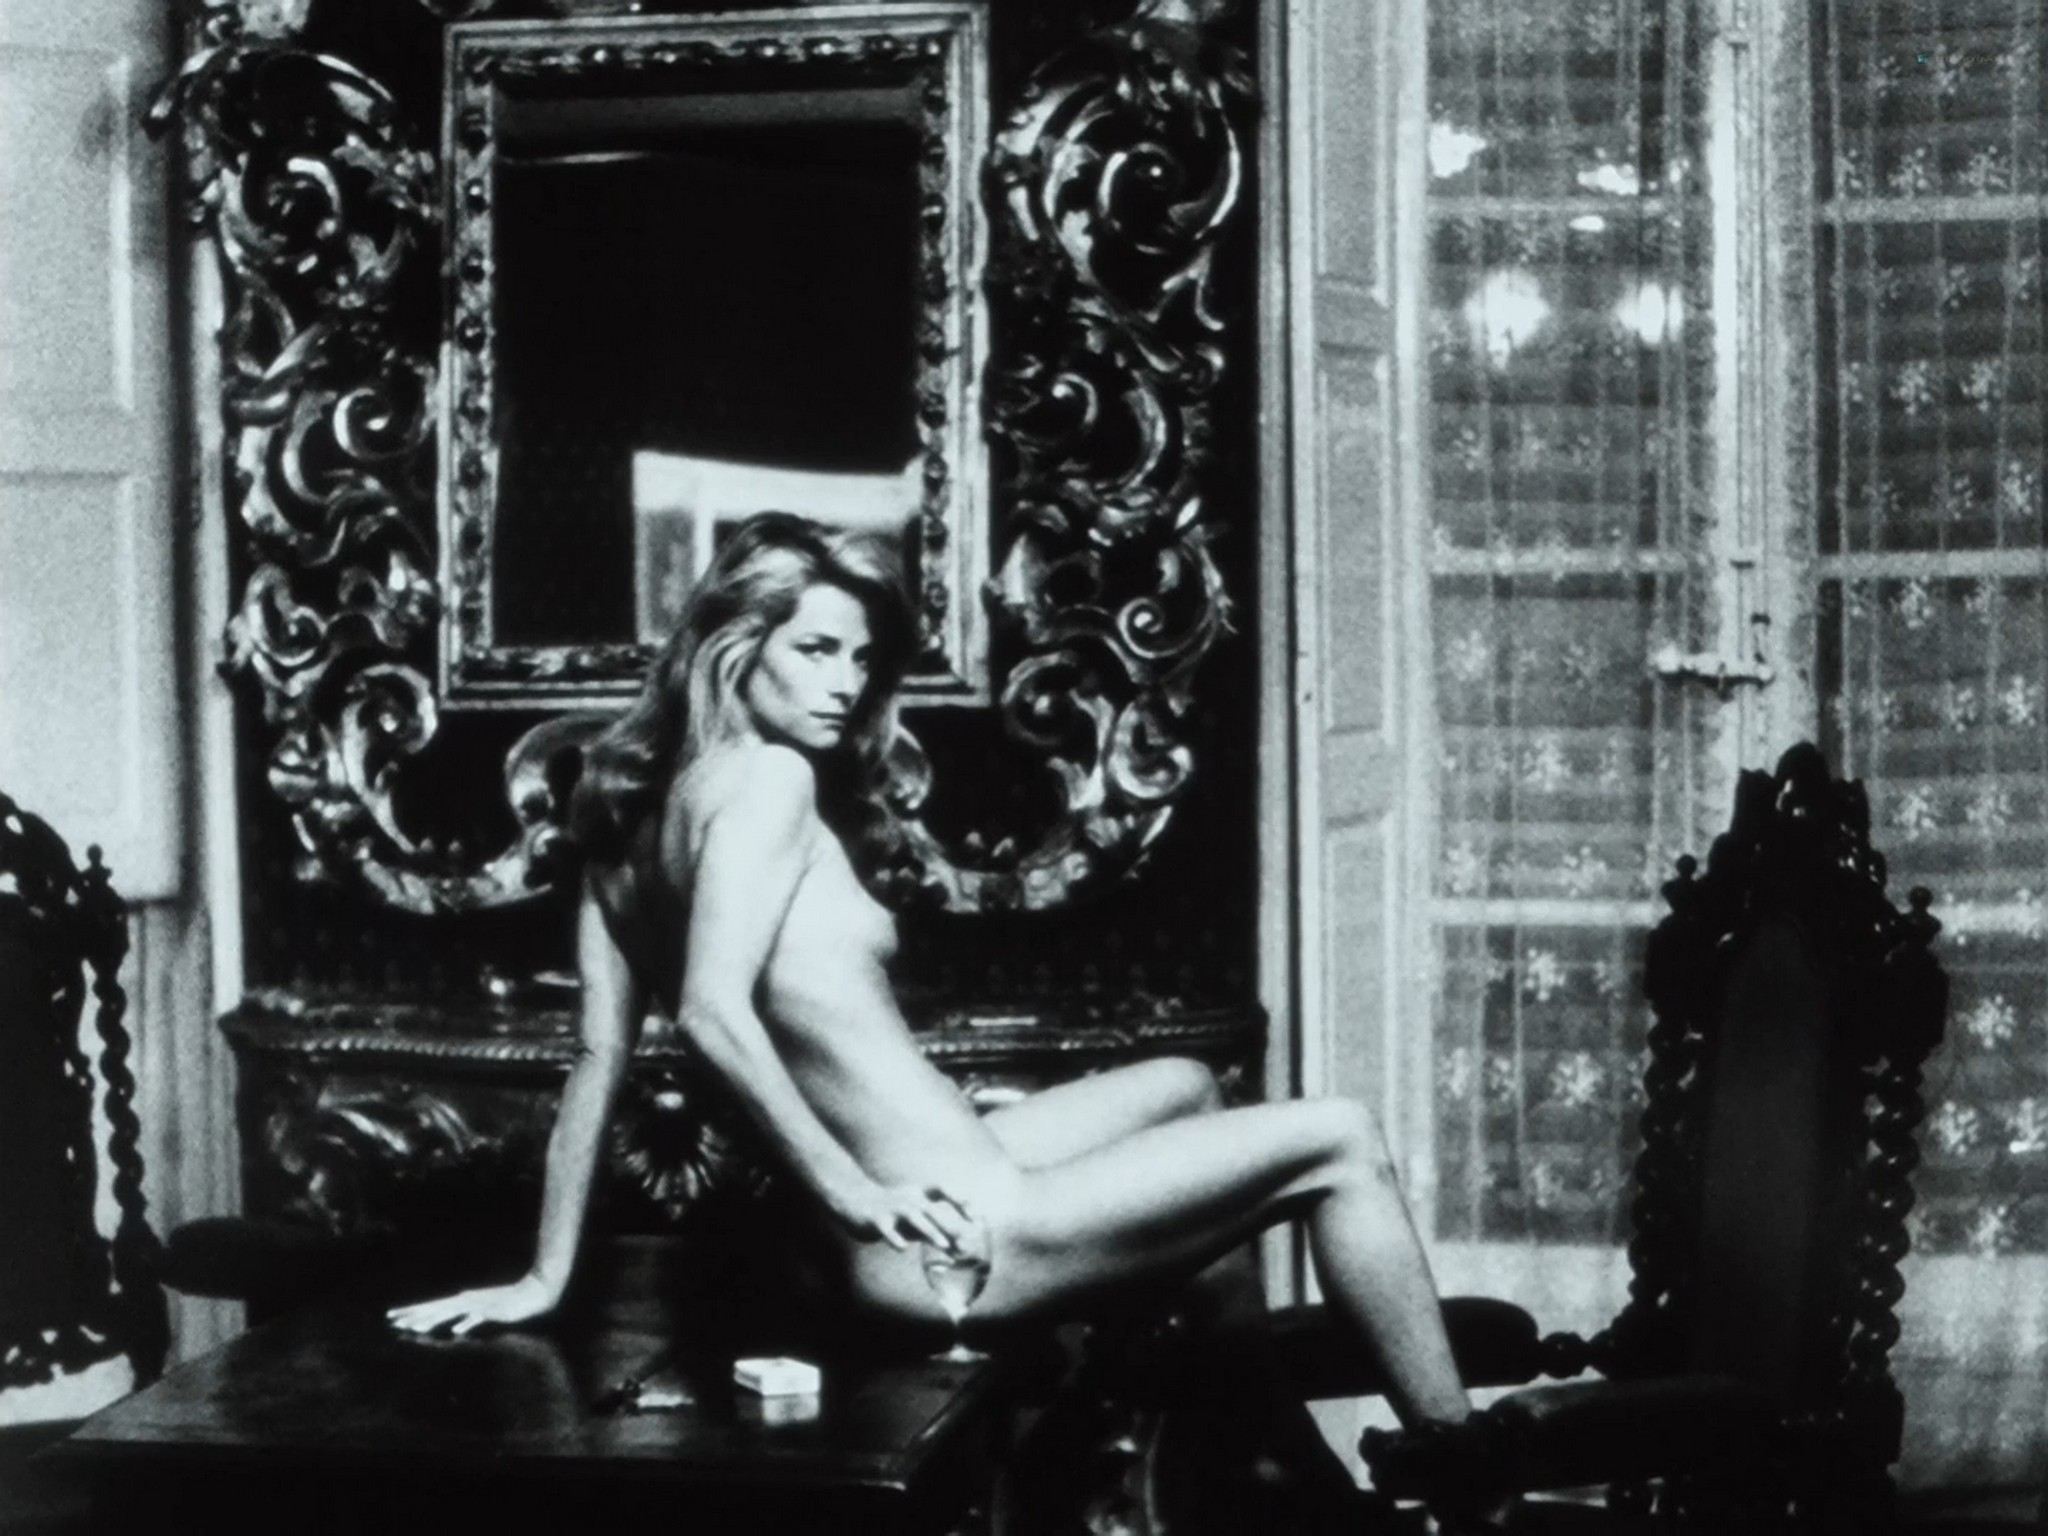 Sigourney Weaver hot Charlotte Rampling nude others nude most full frontal Helmut Newton Frames from the Edge 1989 1080p BluRay 12